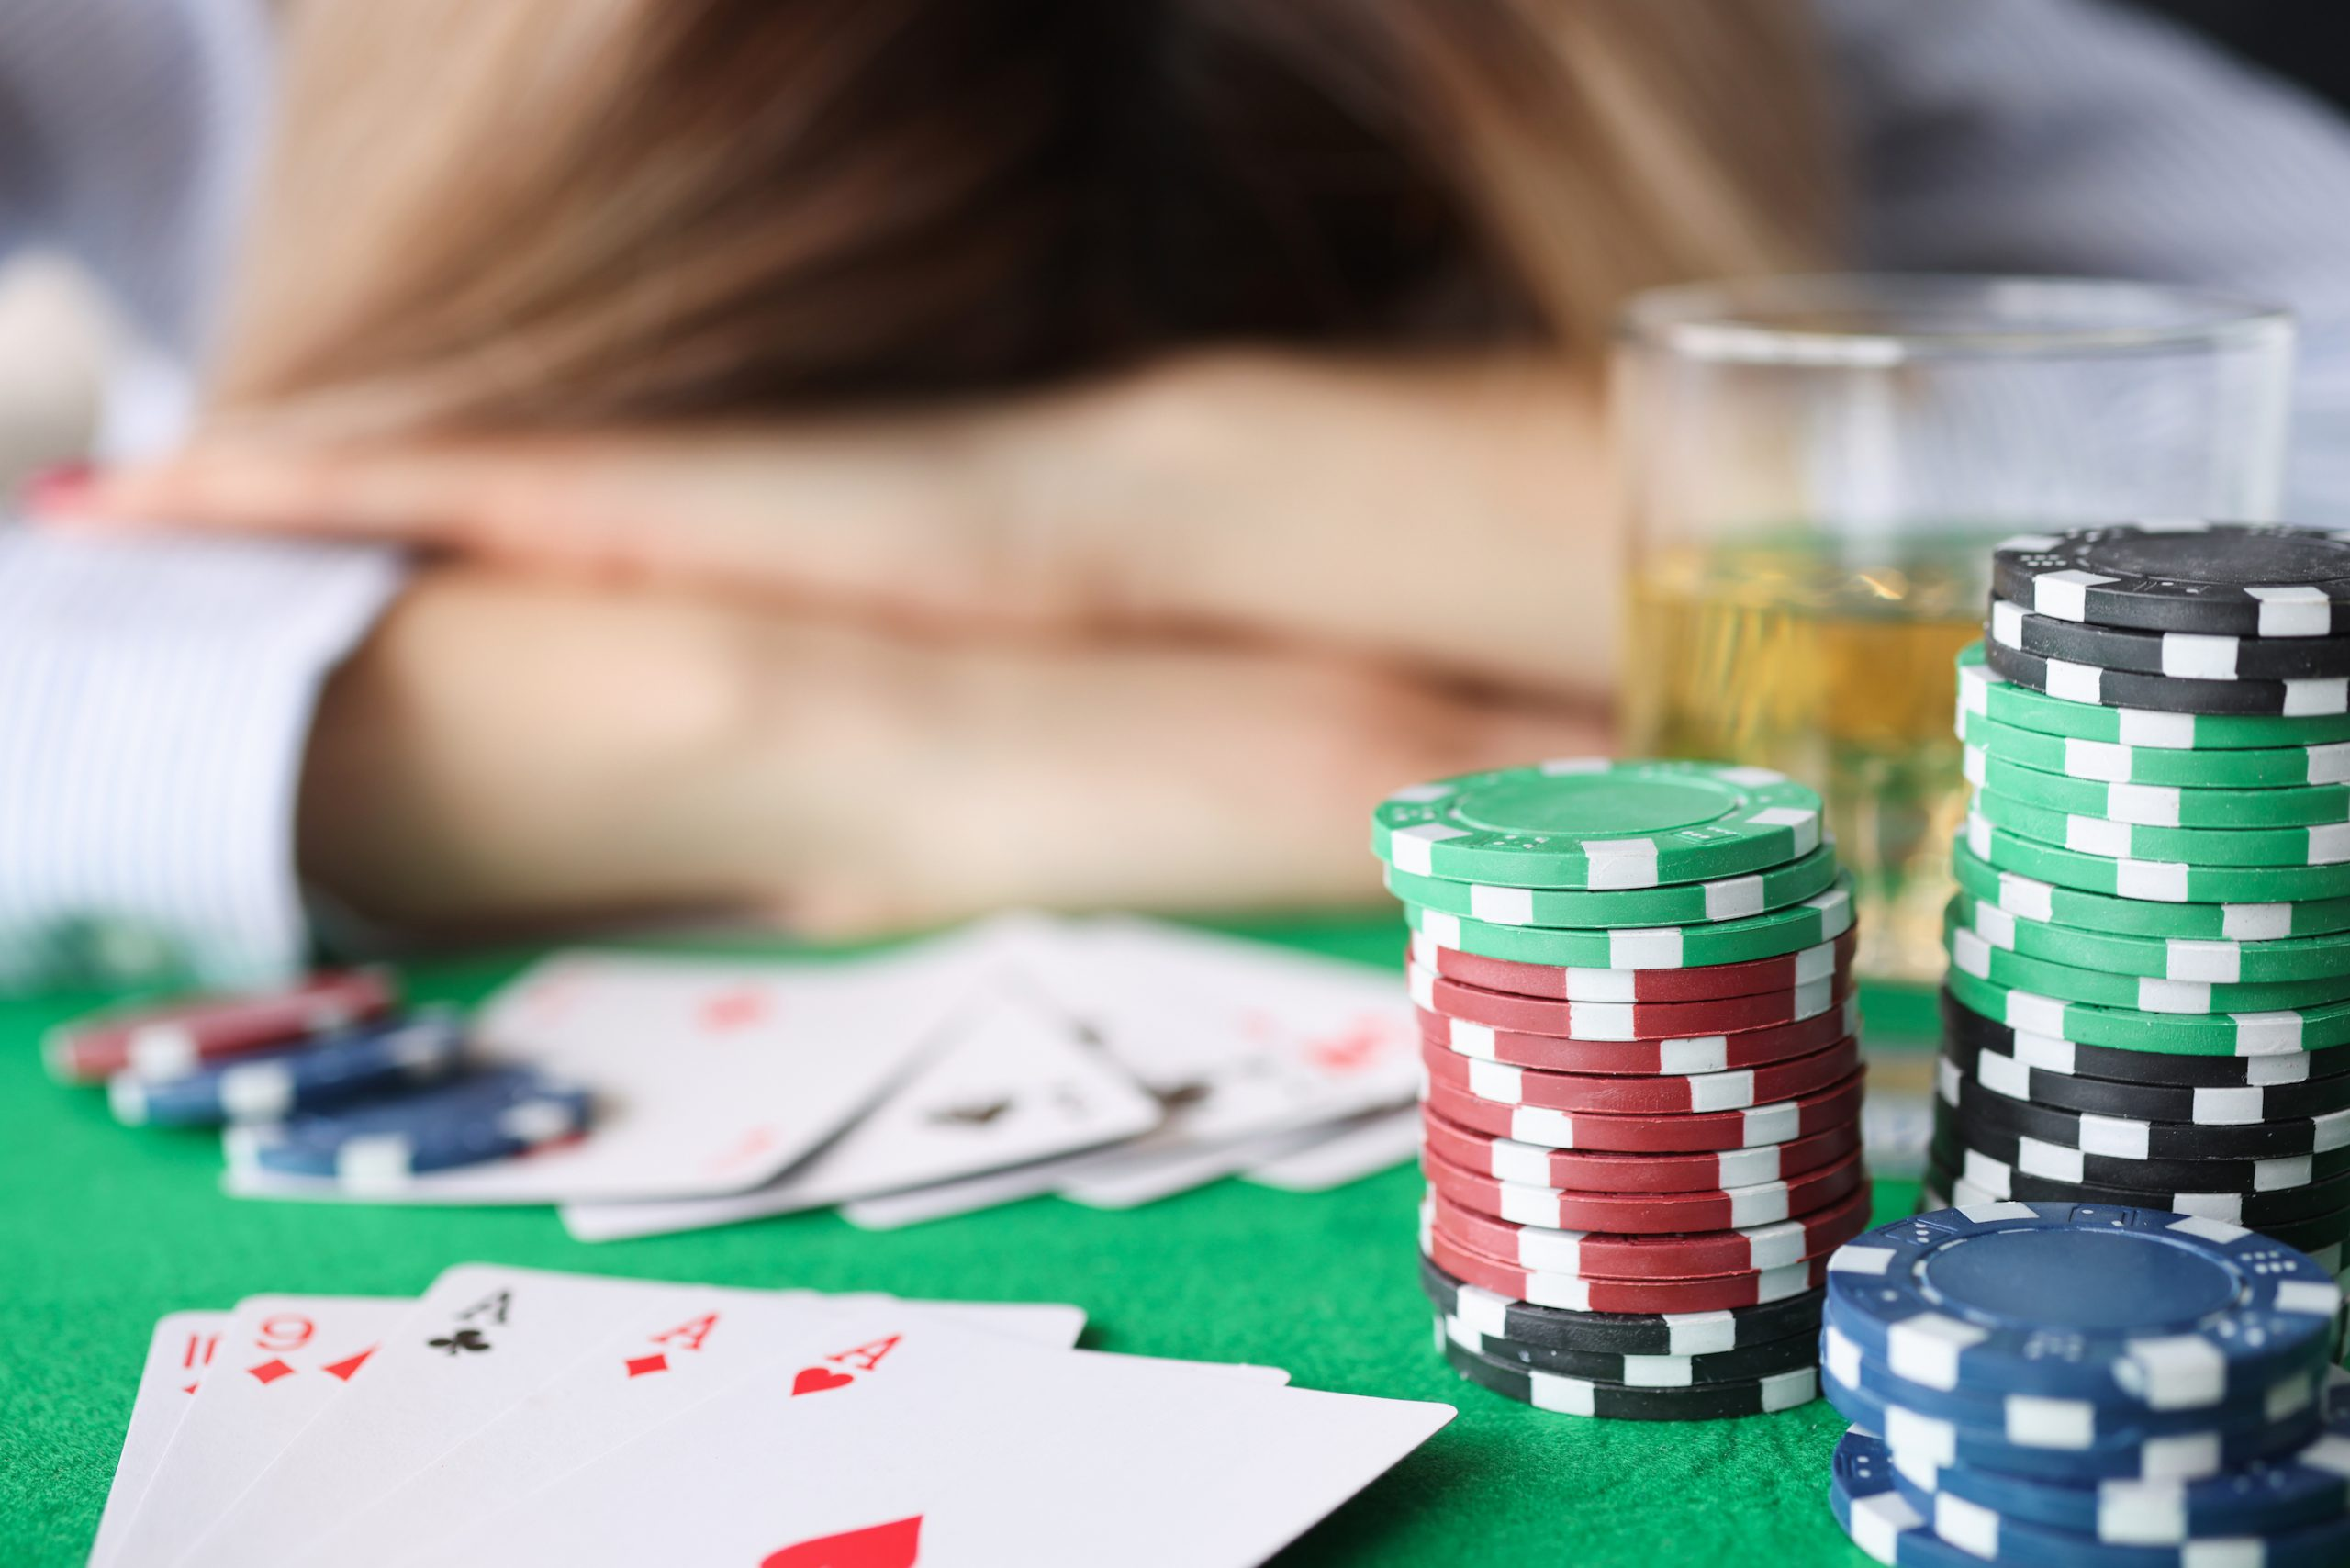 The Relationship Anxiety Has With Addiction Similar to Gambling